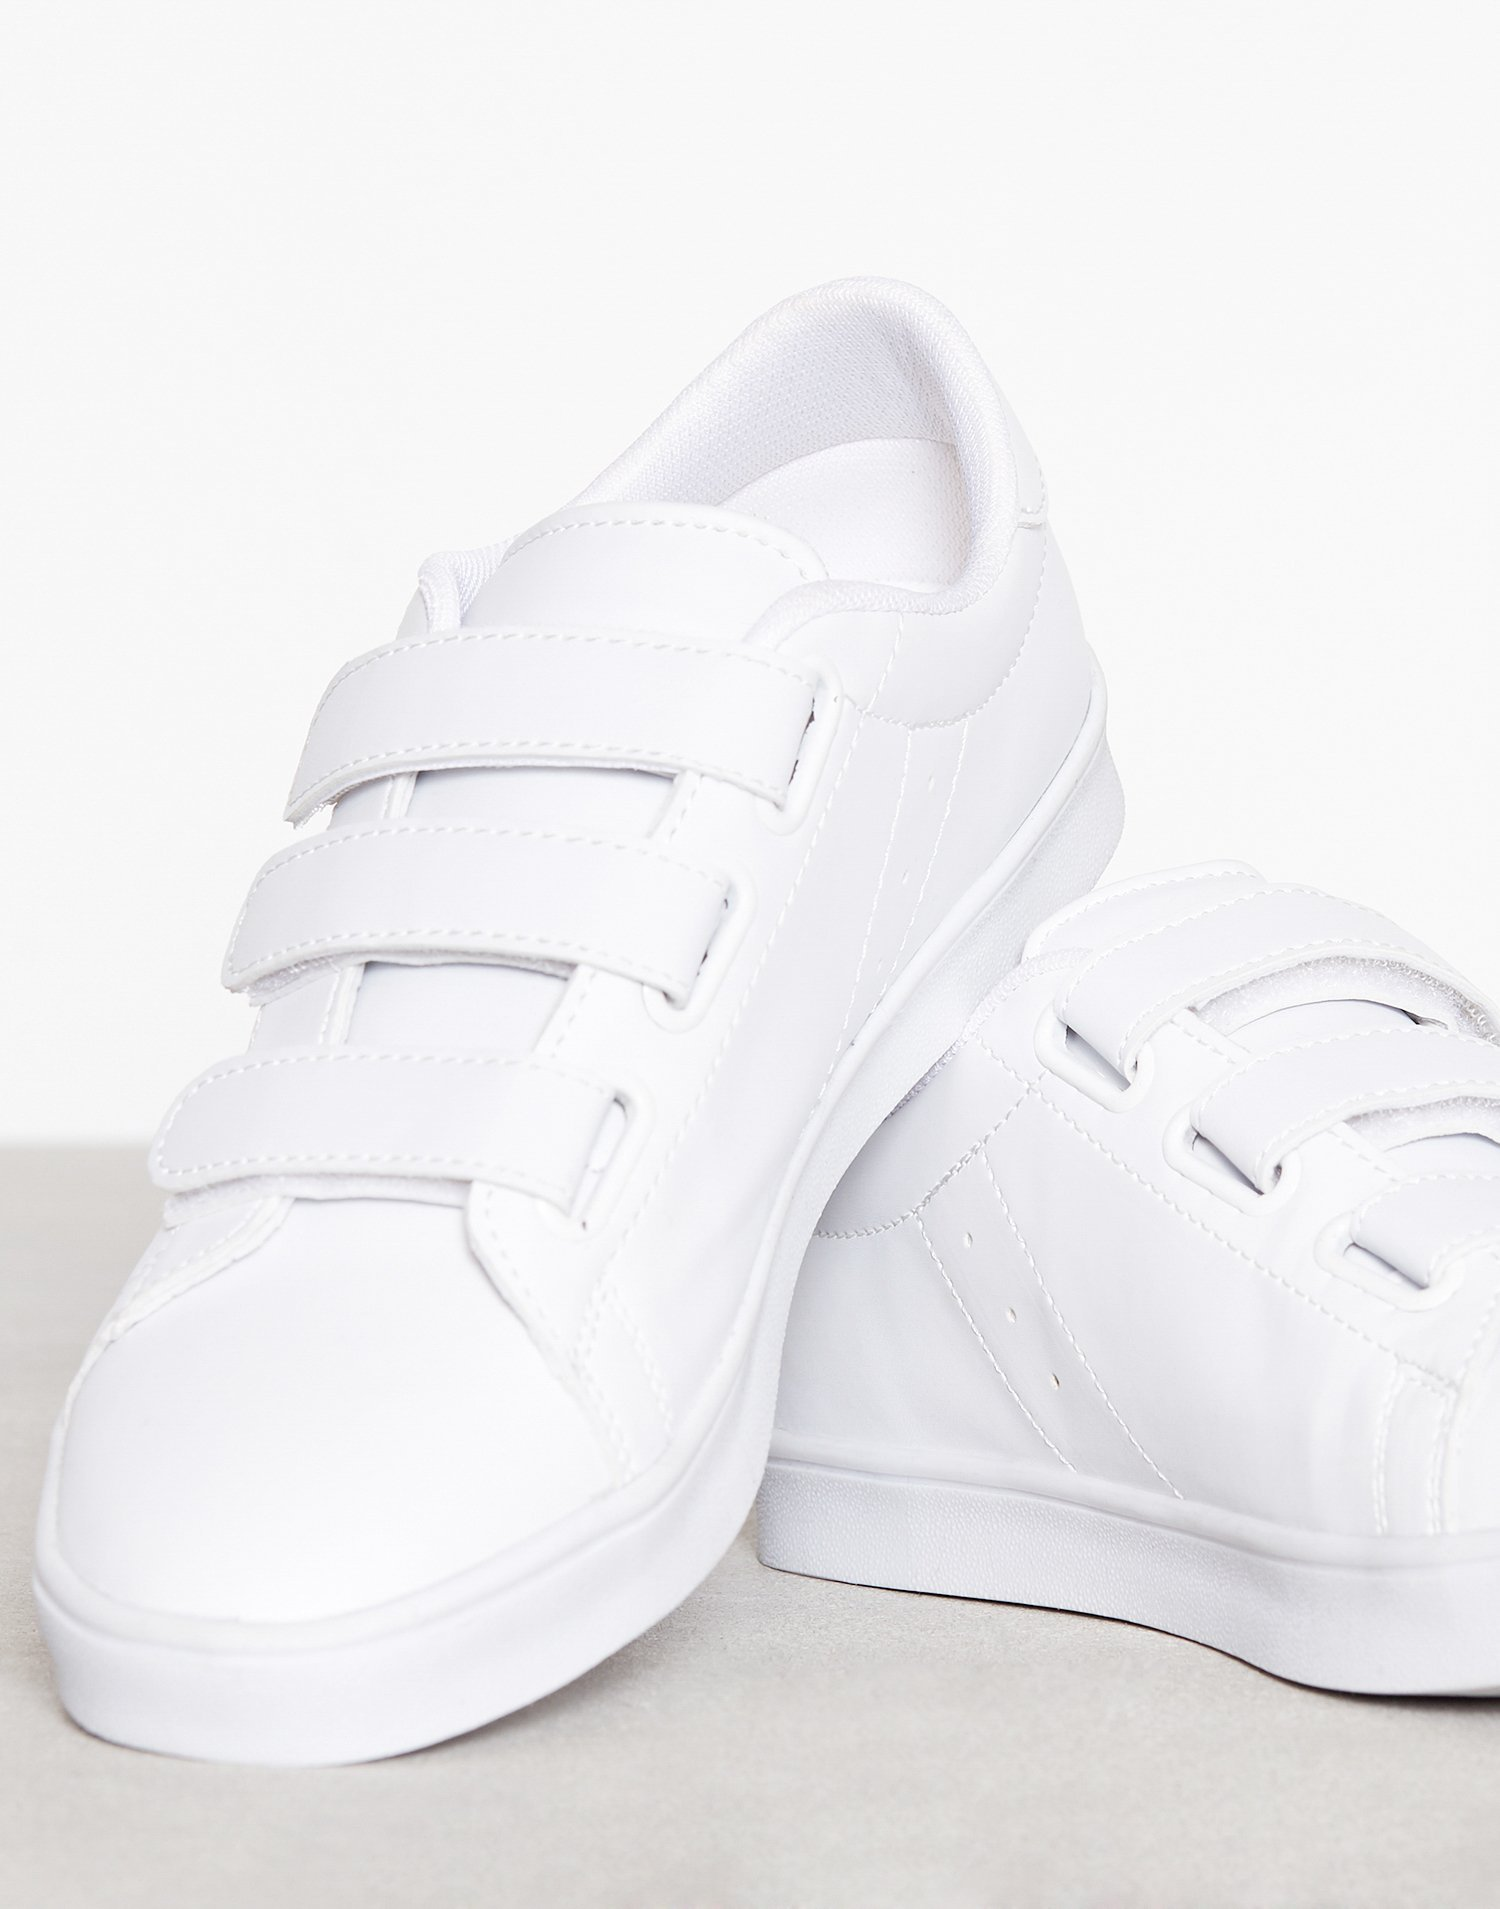 Velcro Sneaker by Nly Shoes